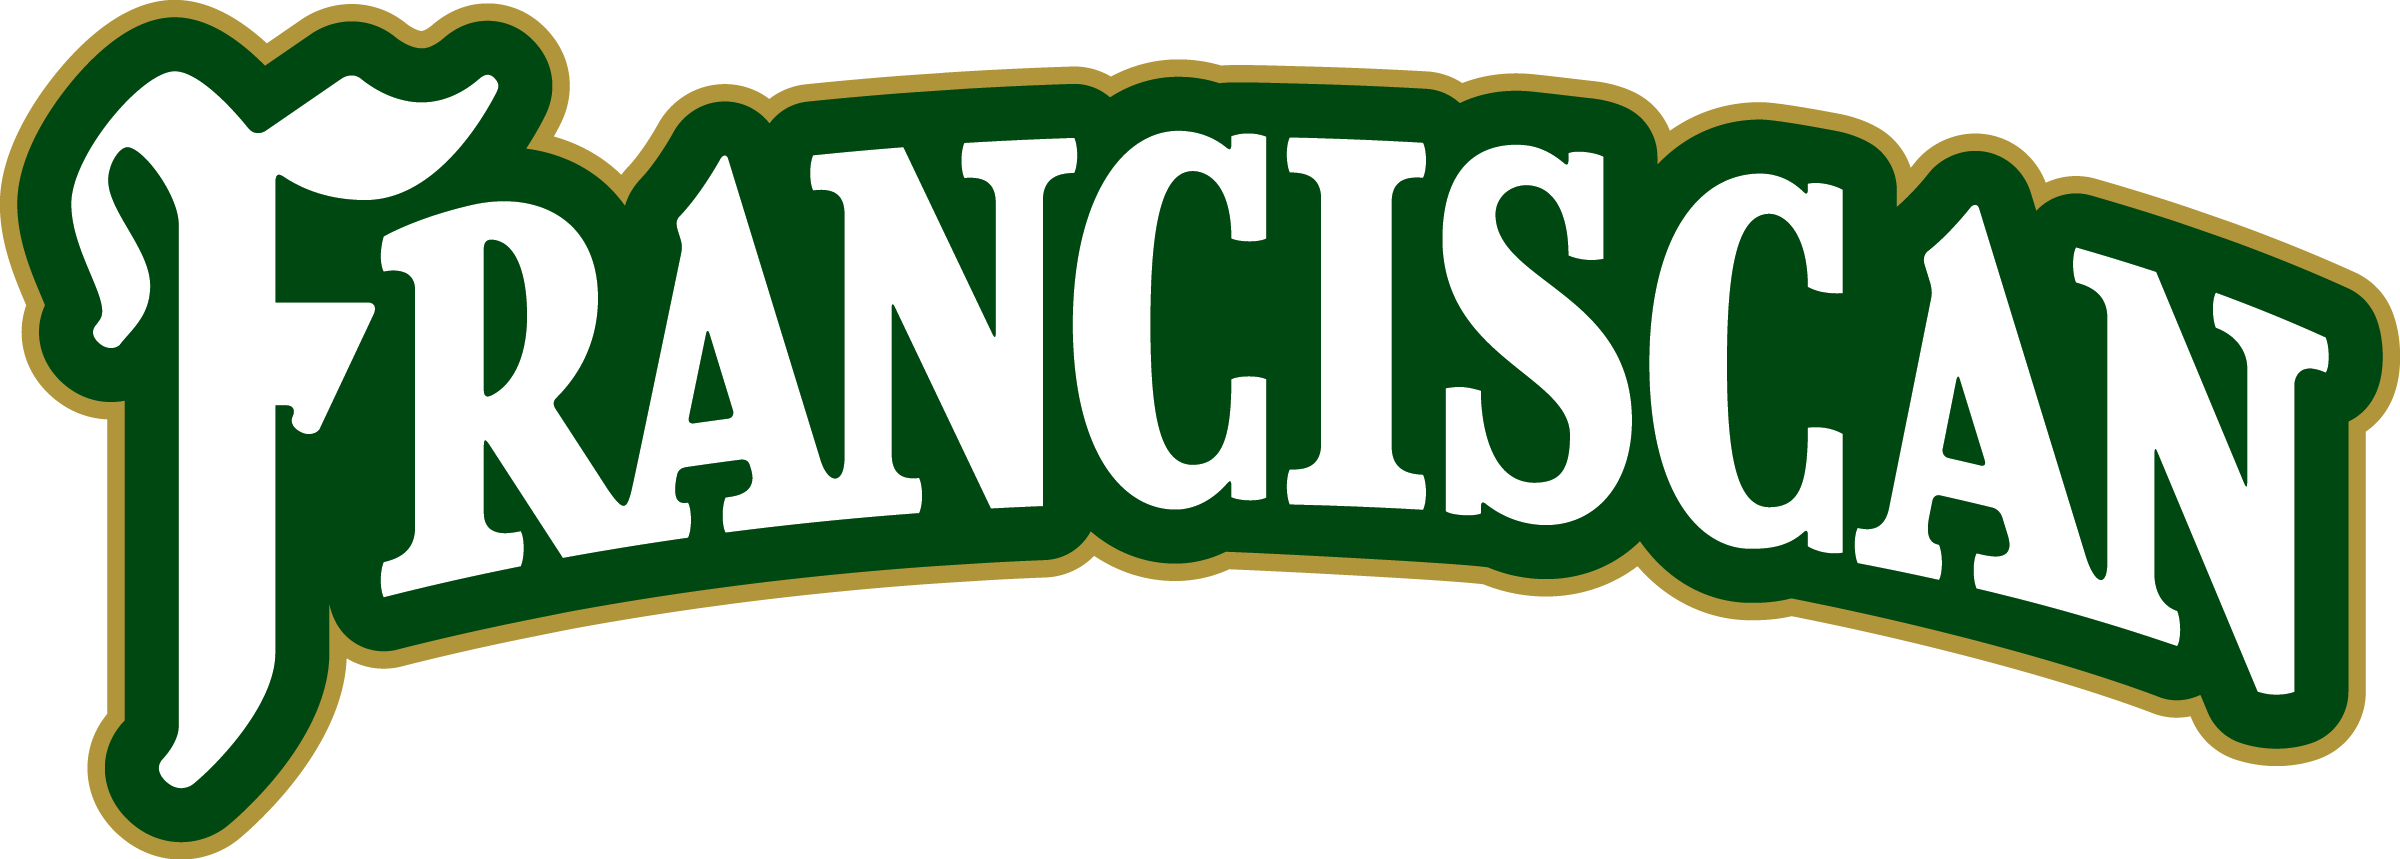 Franciscan wordmark_PMS.png